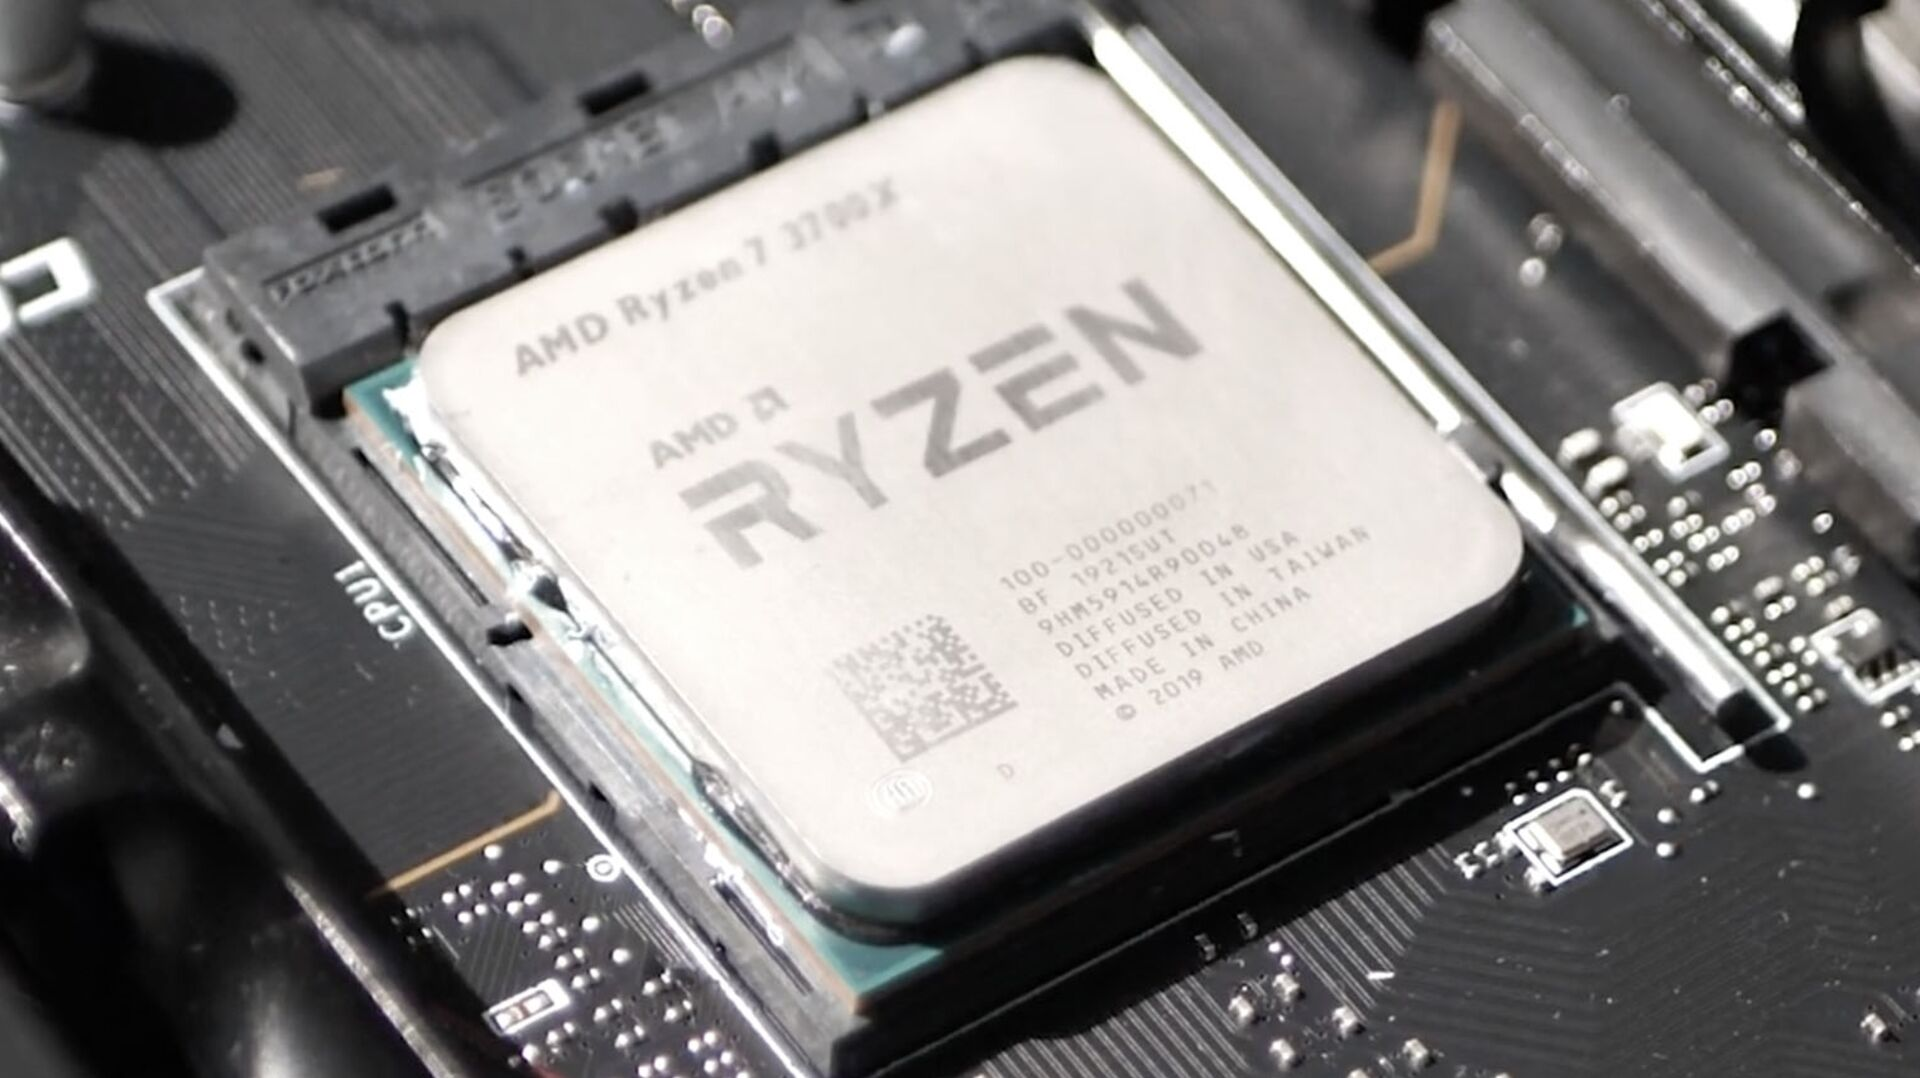 Amd Ryzen 7 3700x Review Can Gaming Performance Compete With Intel Eurogamer Net